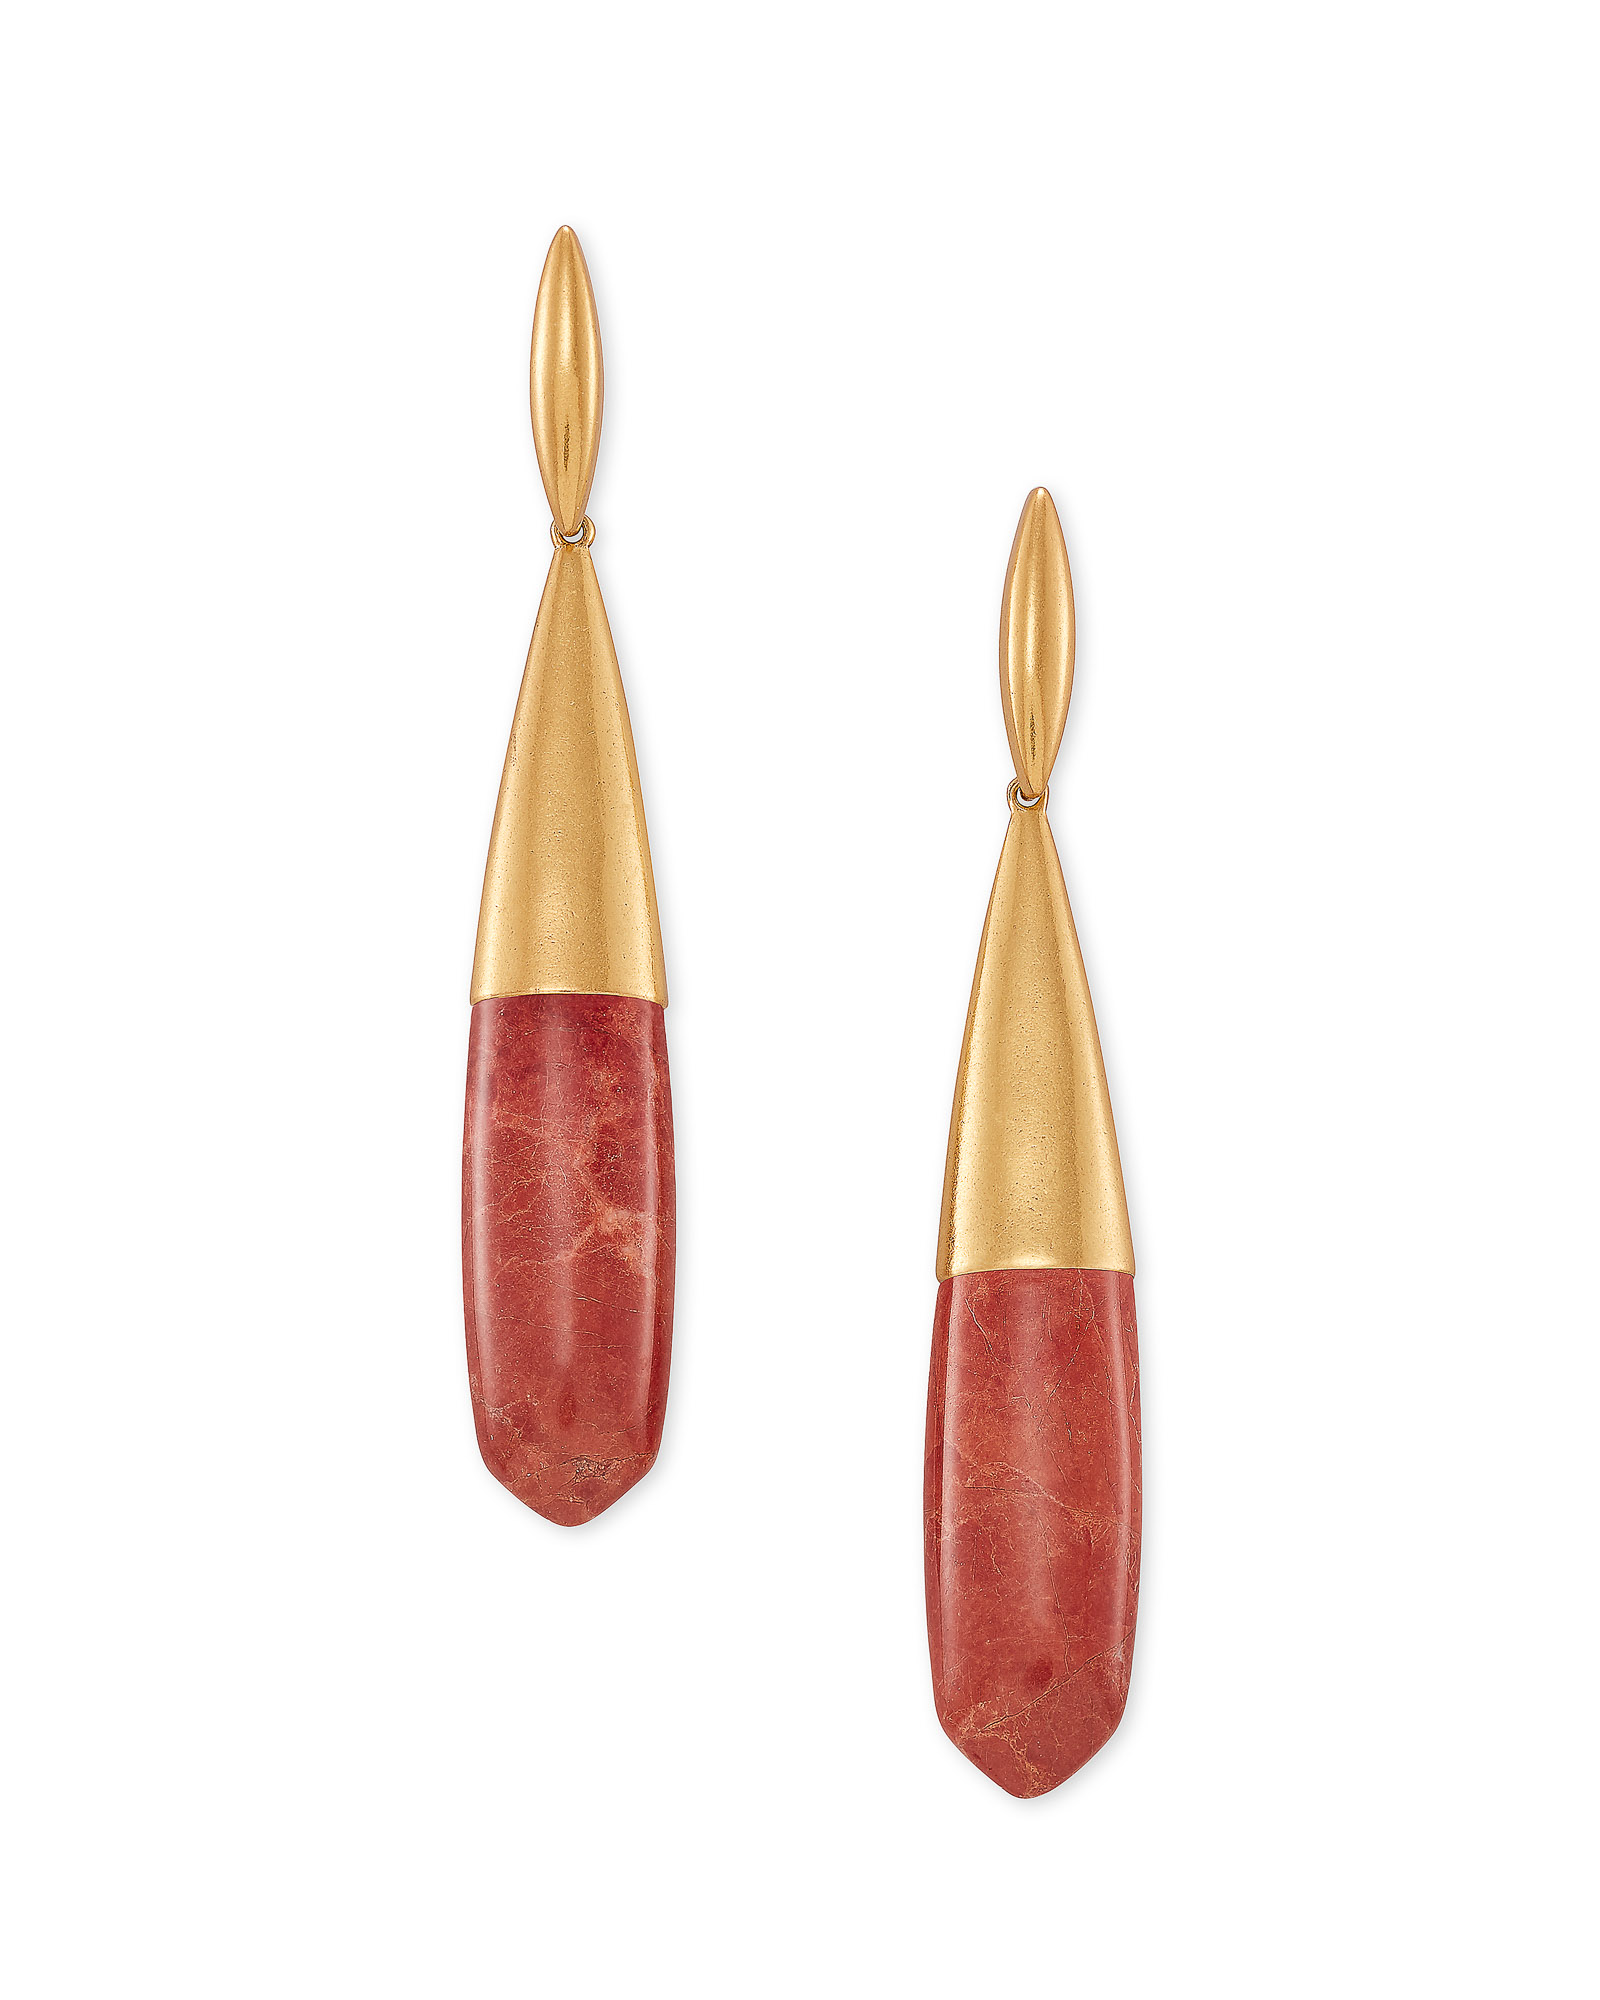 Frieda Vintage Gold Linear Earrings in Burnt Sienna Howlite